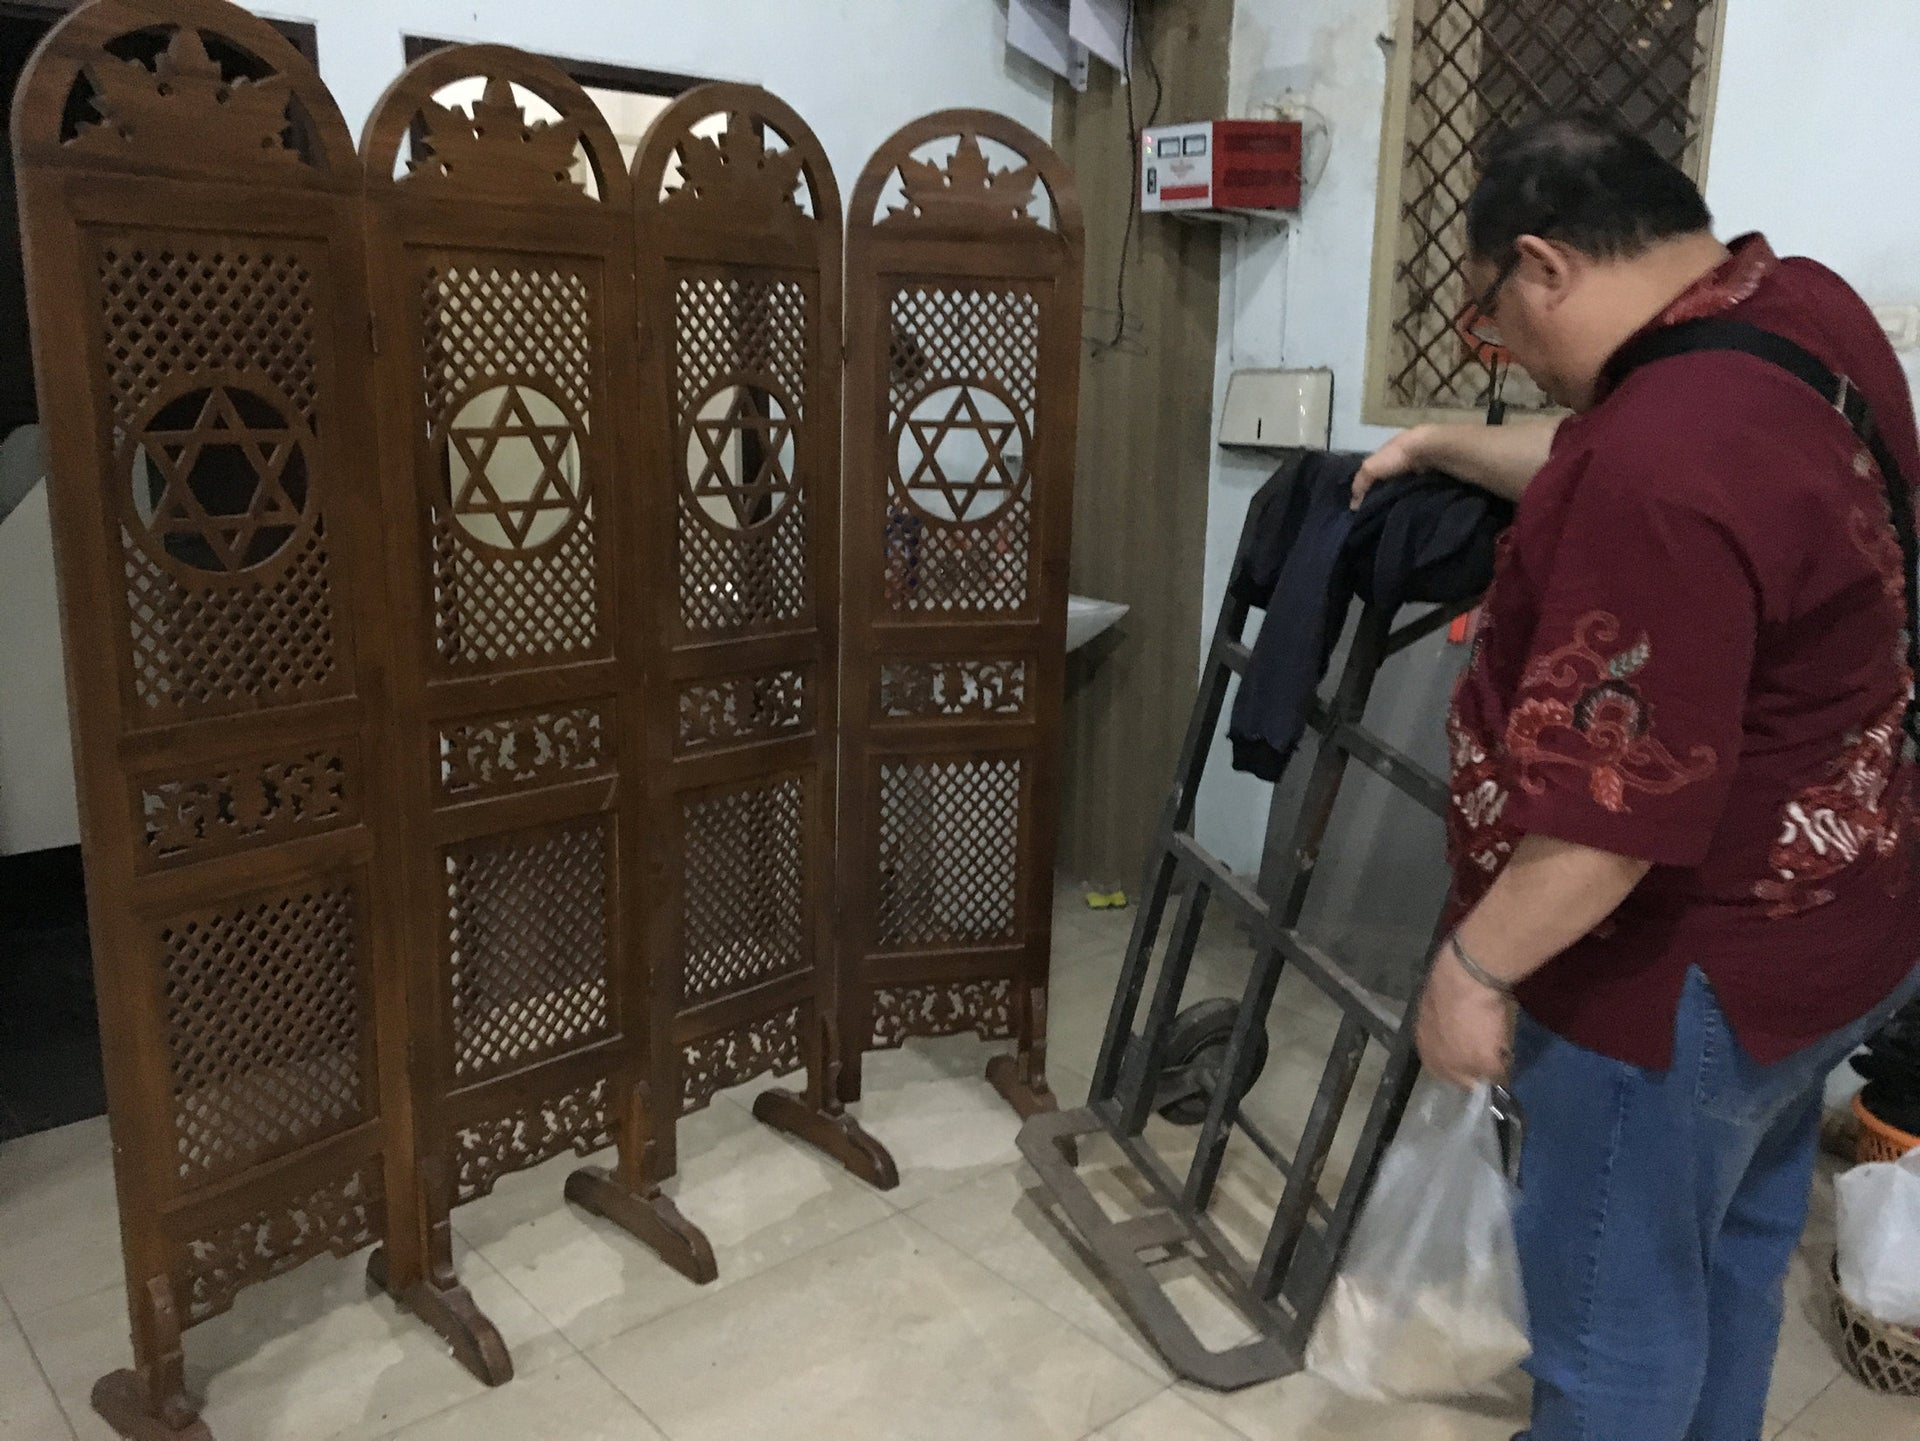 After Shabbat prayers are over, Rudi C. rearranges a wooden divider with an engraving of the Magen David, to block the view of the stairs leading to the shul in Jakarta.